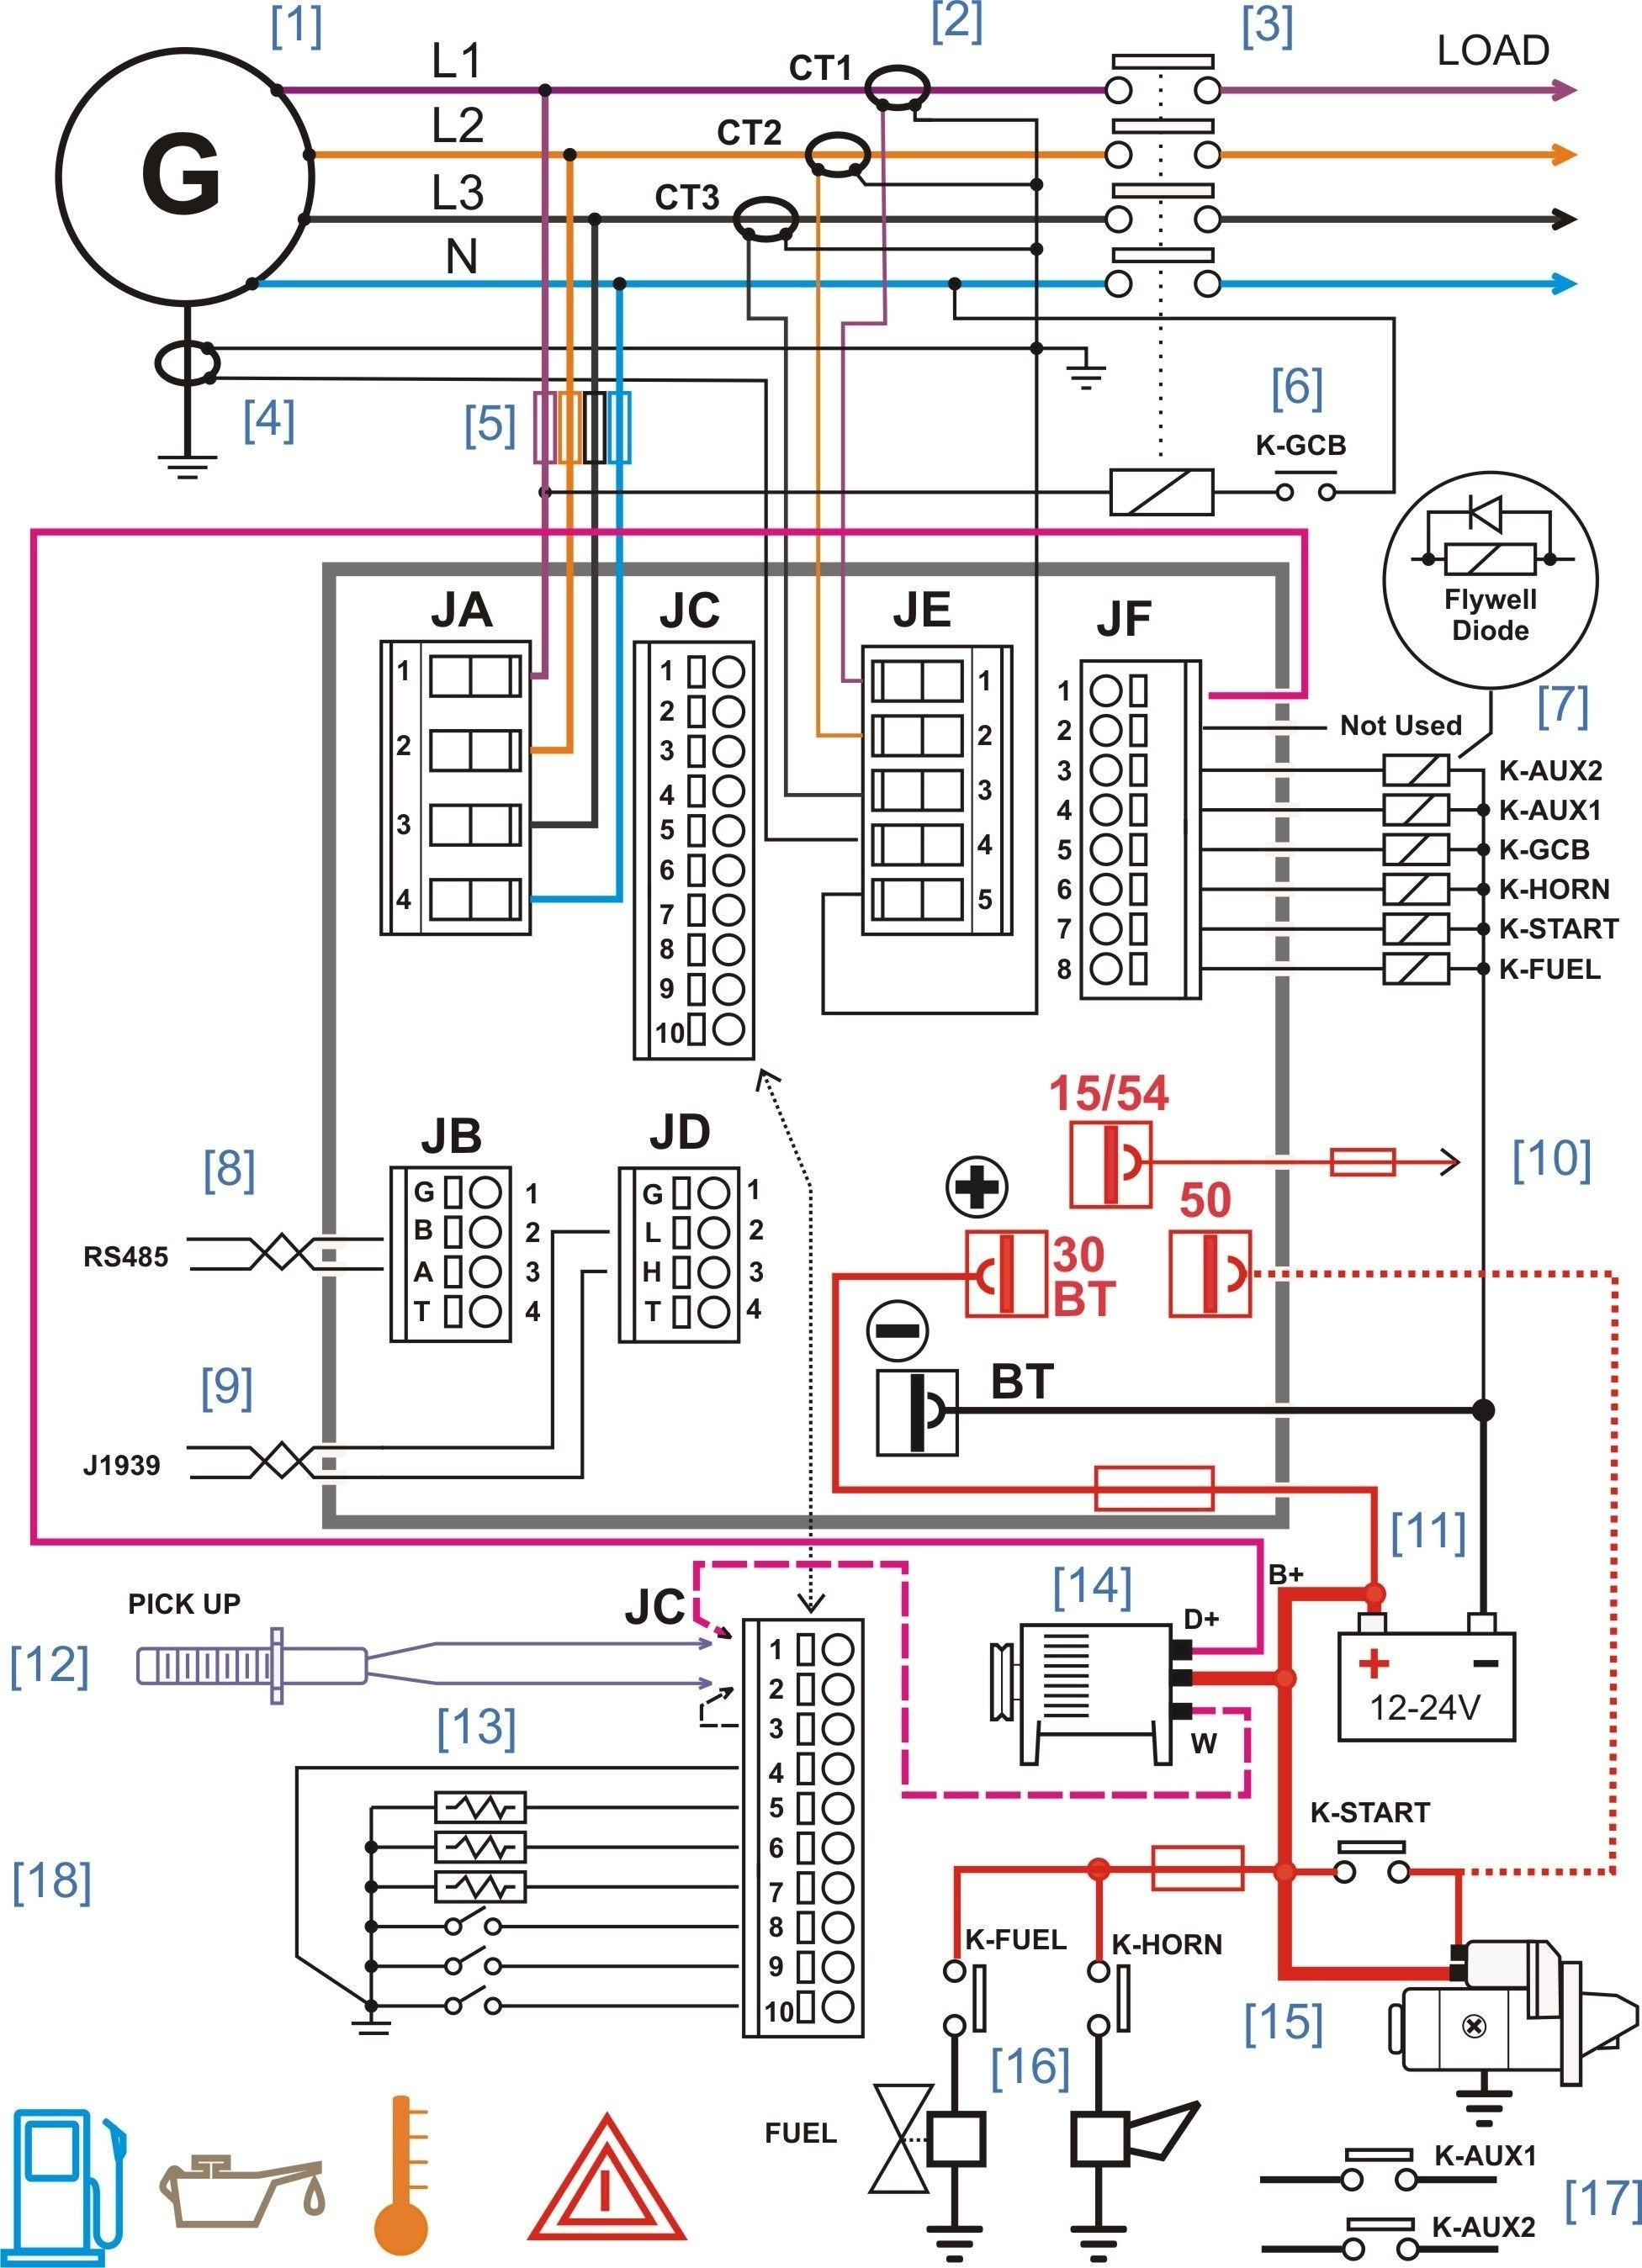 hight resolution of home wiring diagram tool wiring diagram view guitar wiring diagram maker wiring diagram name guitar wiring